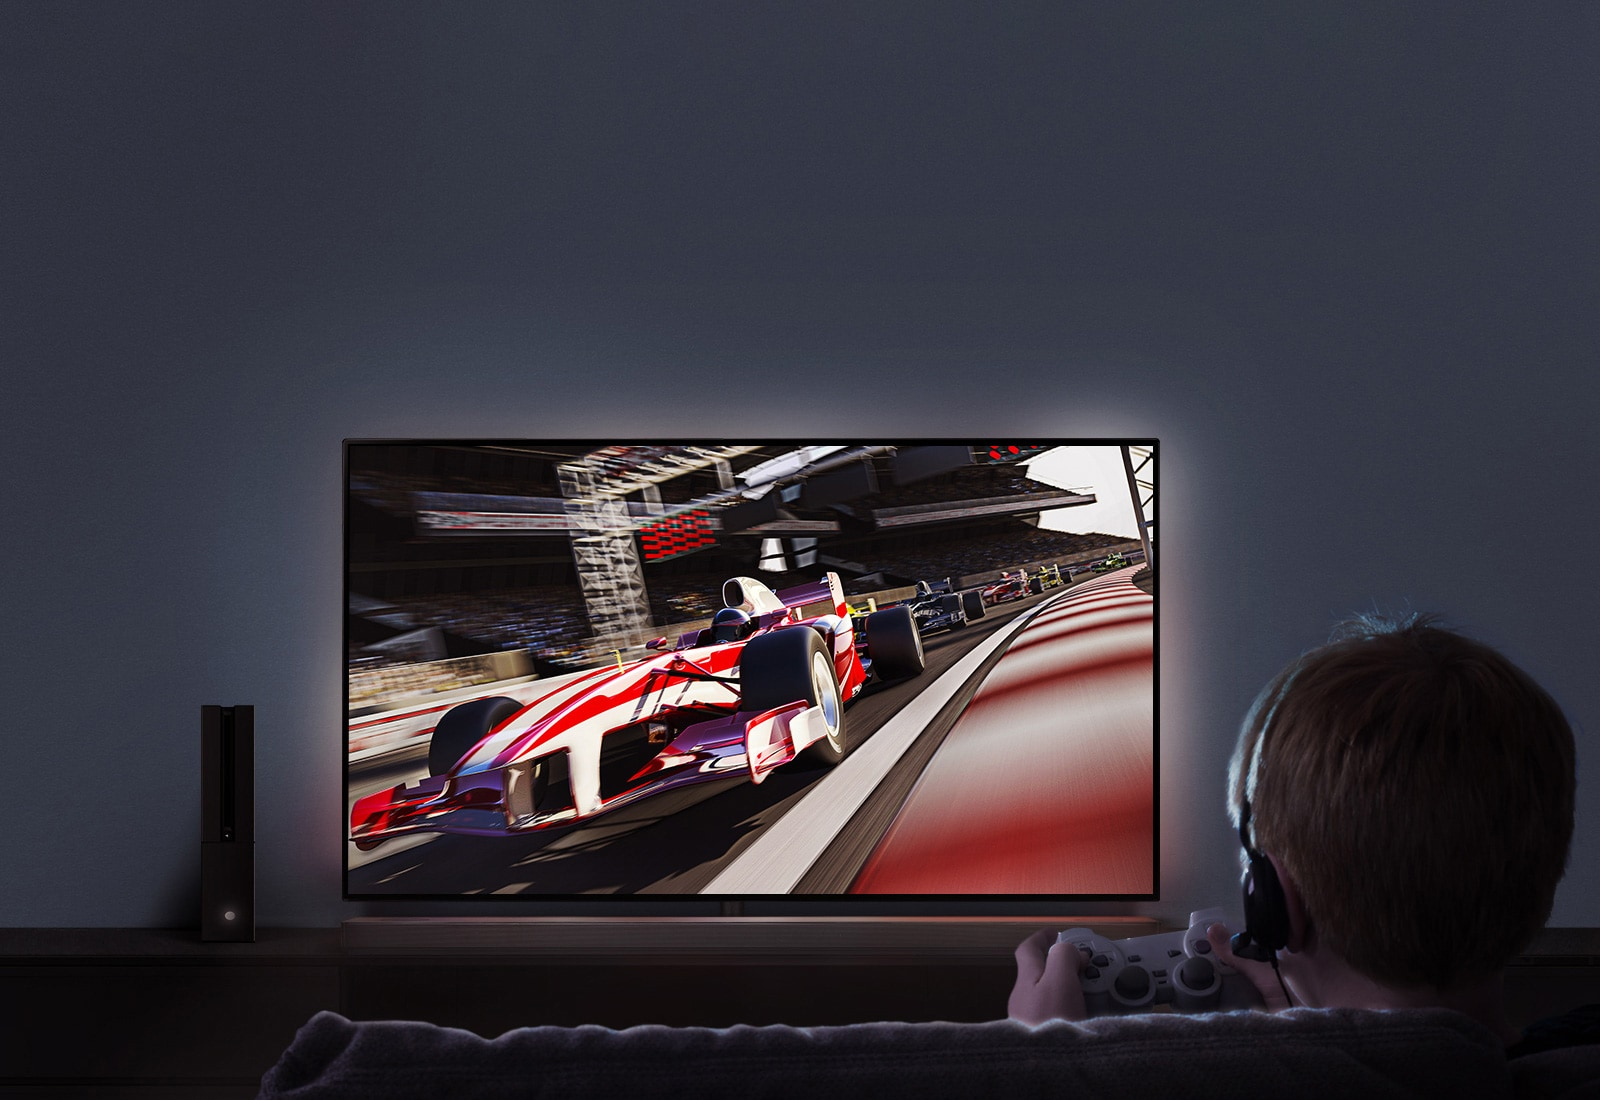 Lg 65 Super Uhd 4k Tv Electronics Sg Led Diagram Movement Color Remote Smooth And Fast Hdr Gaming